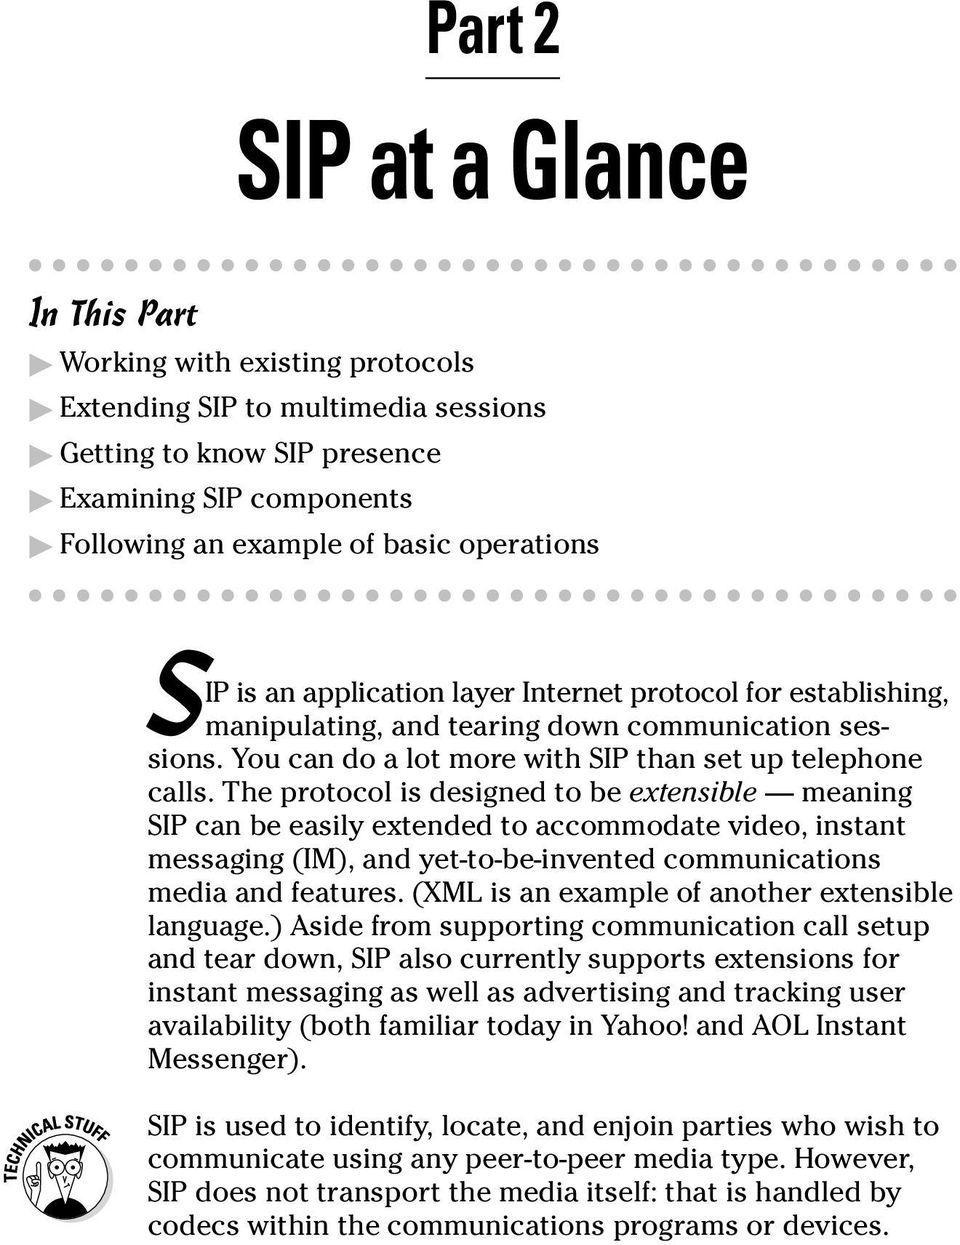 The protocol is designed to be extensible meaning SIP can be easily extended to accommodate video, instant messaging (IM), and yet-to-be-invented communications media and features.